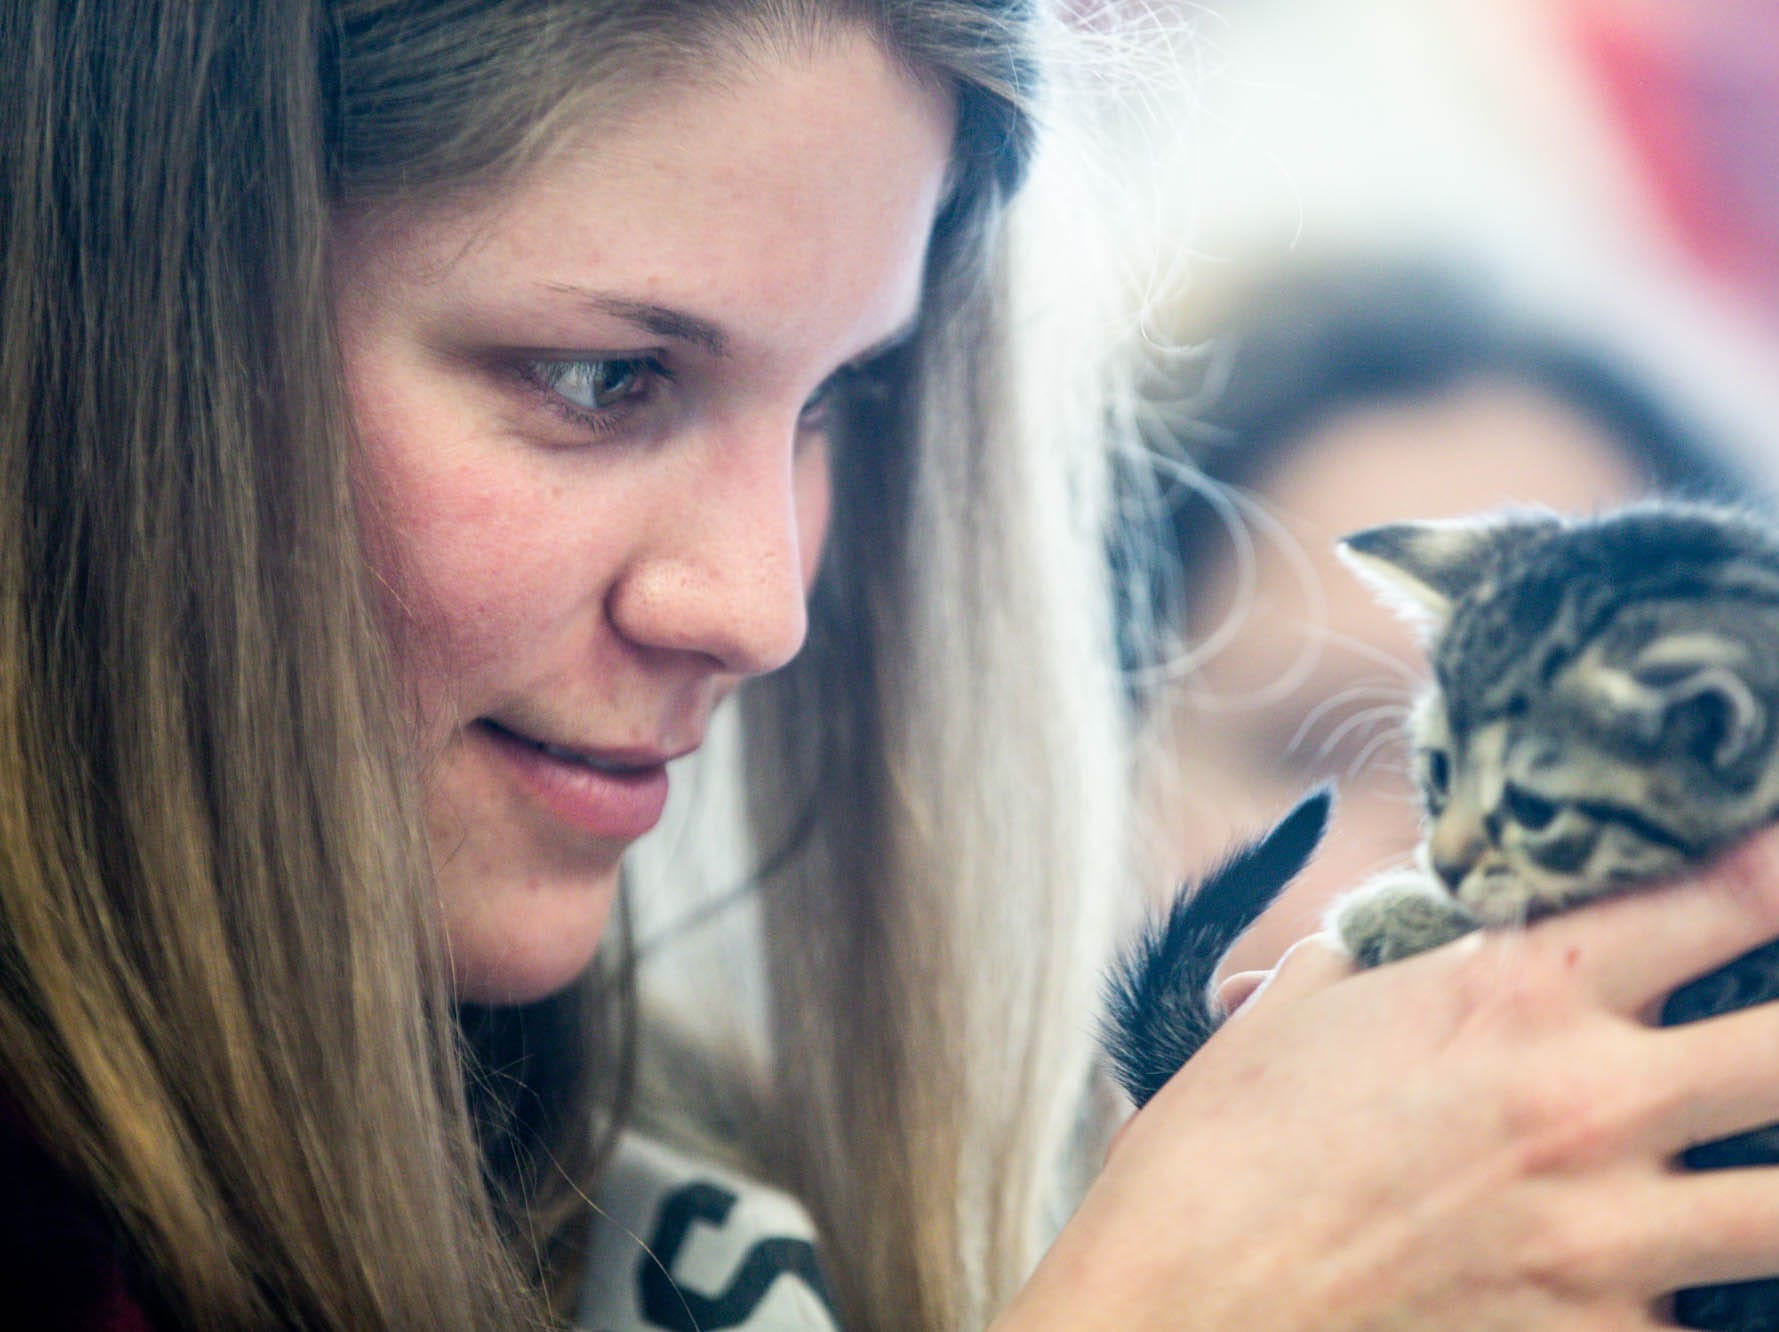 Sarah Martens holds a little kitten up for adoption during the Indy Humane Puppy and Kitten Baby Shower on Sunday, March 10, 2019. The event educates families on Indy Humane's foster care program, as Fosters are needed in the spring during puppy and kitten season.